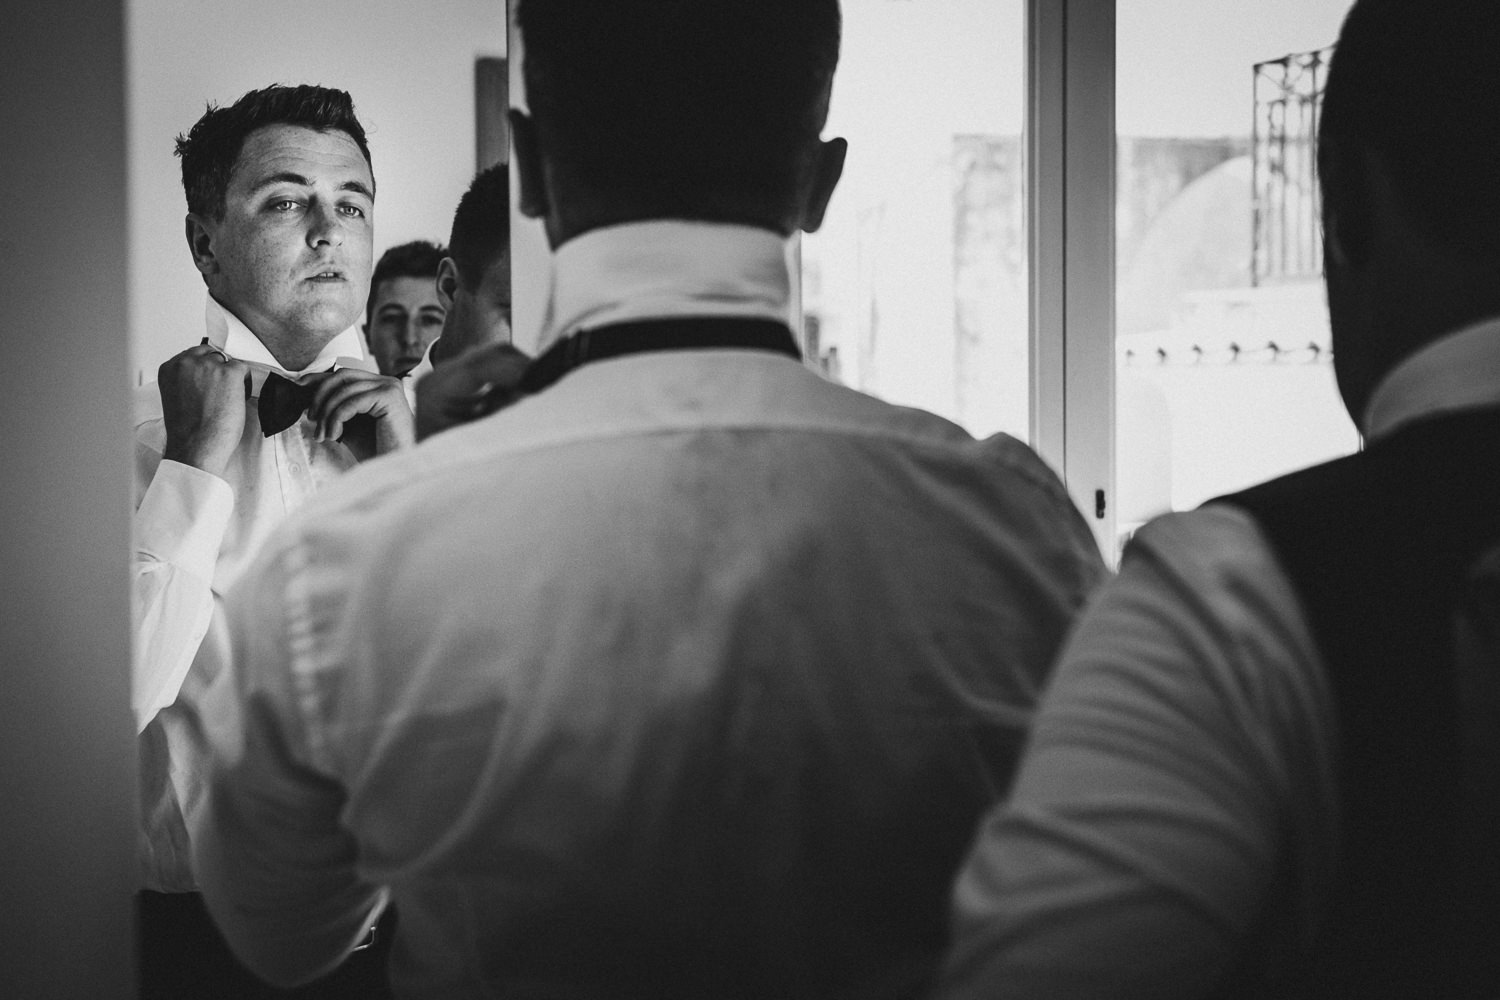 groom-getting-ready-matrimonio-villa-eva-ravello-francesco-ferrarini